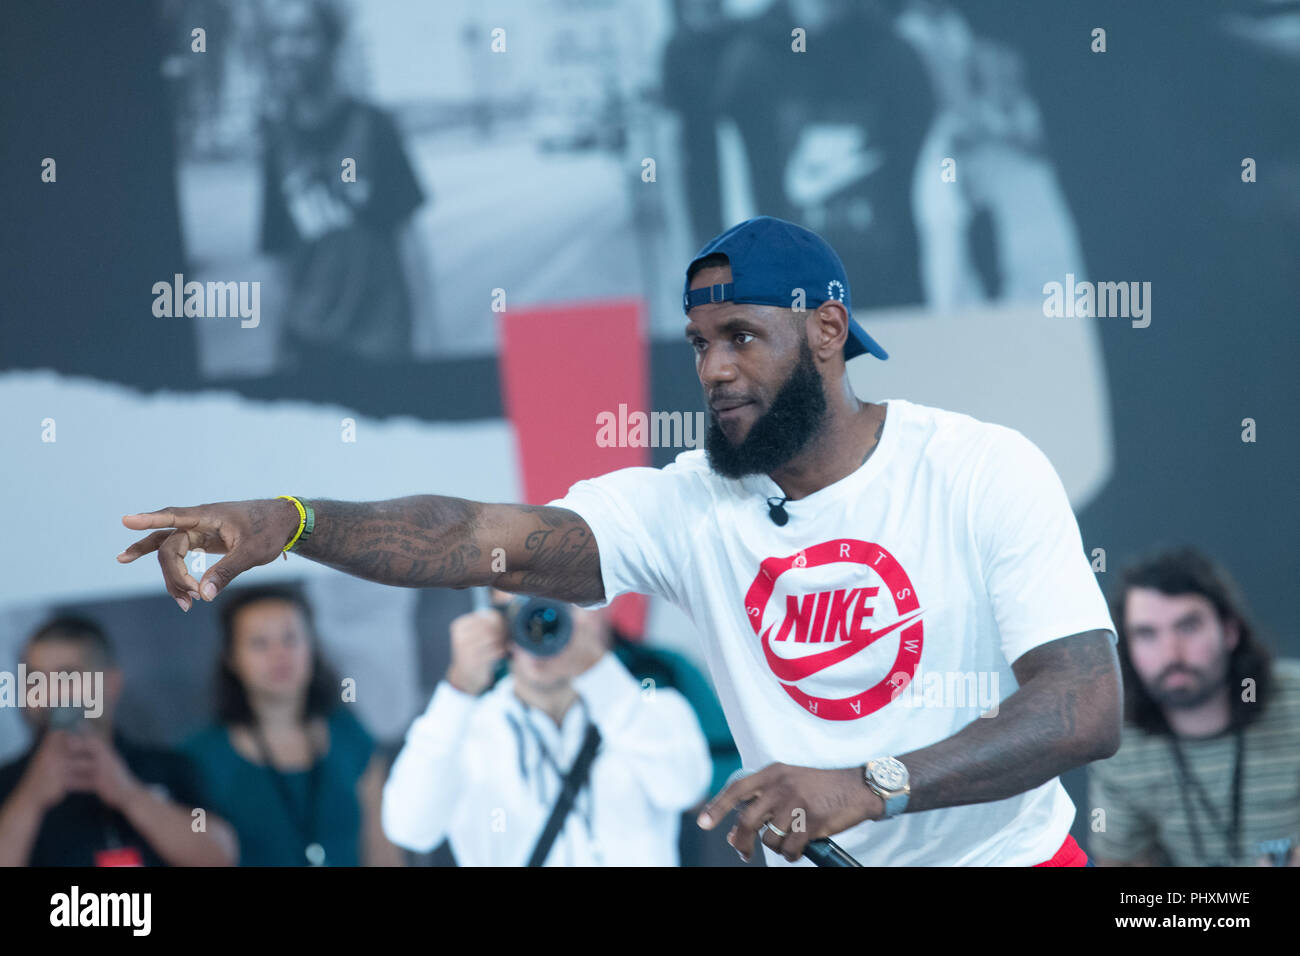 Berlin, Germany. 02nd Sep, 2018. 02.09.2018, Berlin: The American basketball player LeBron Raymone James welcomes the spectators and guests of the 'More than an athlete tour'. Credit: Paul Zinken/dpa/Alamy Live News - Stock Image